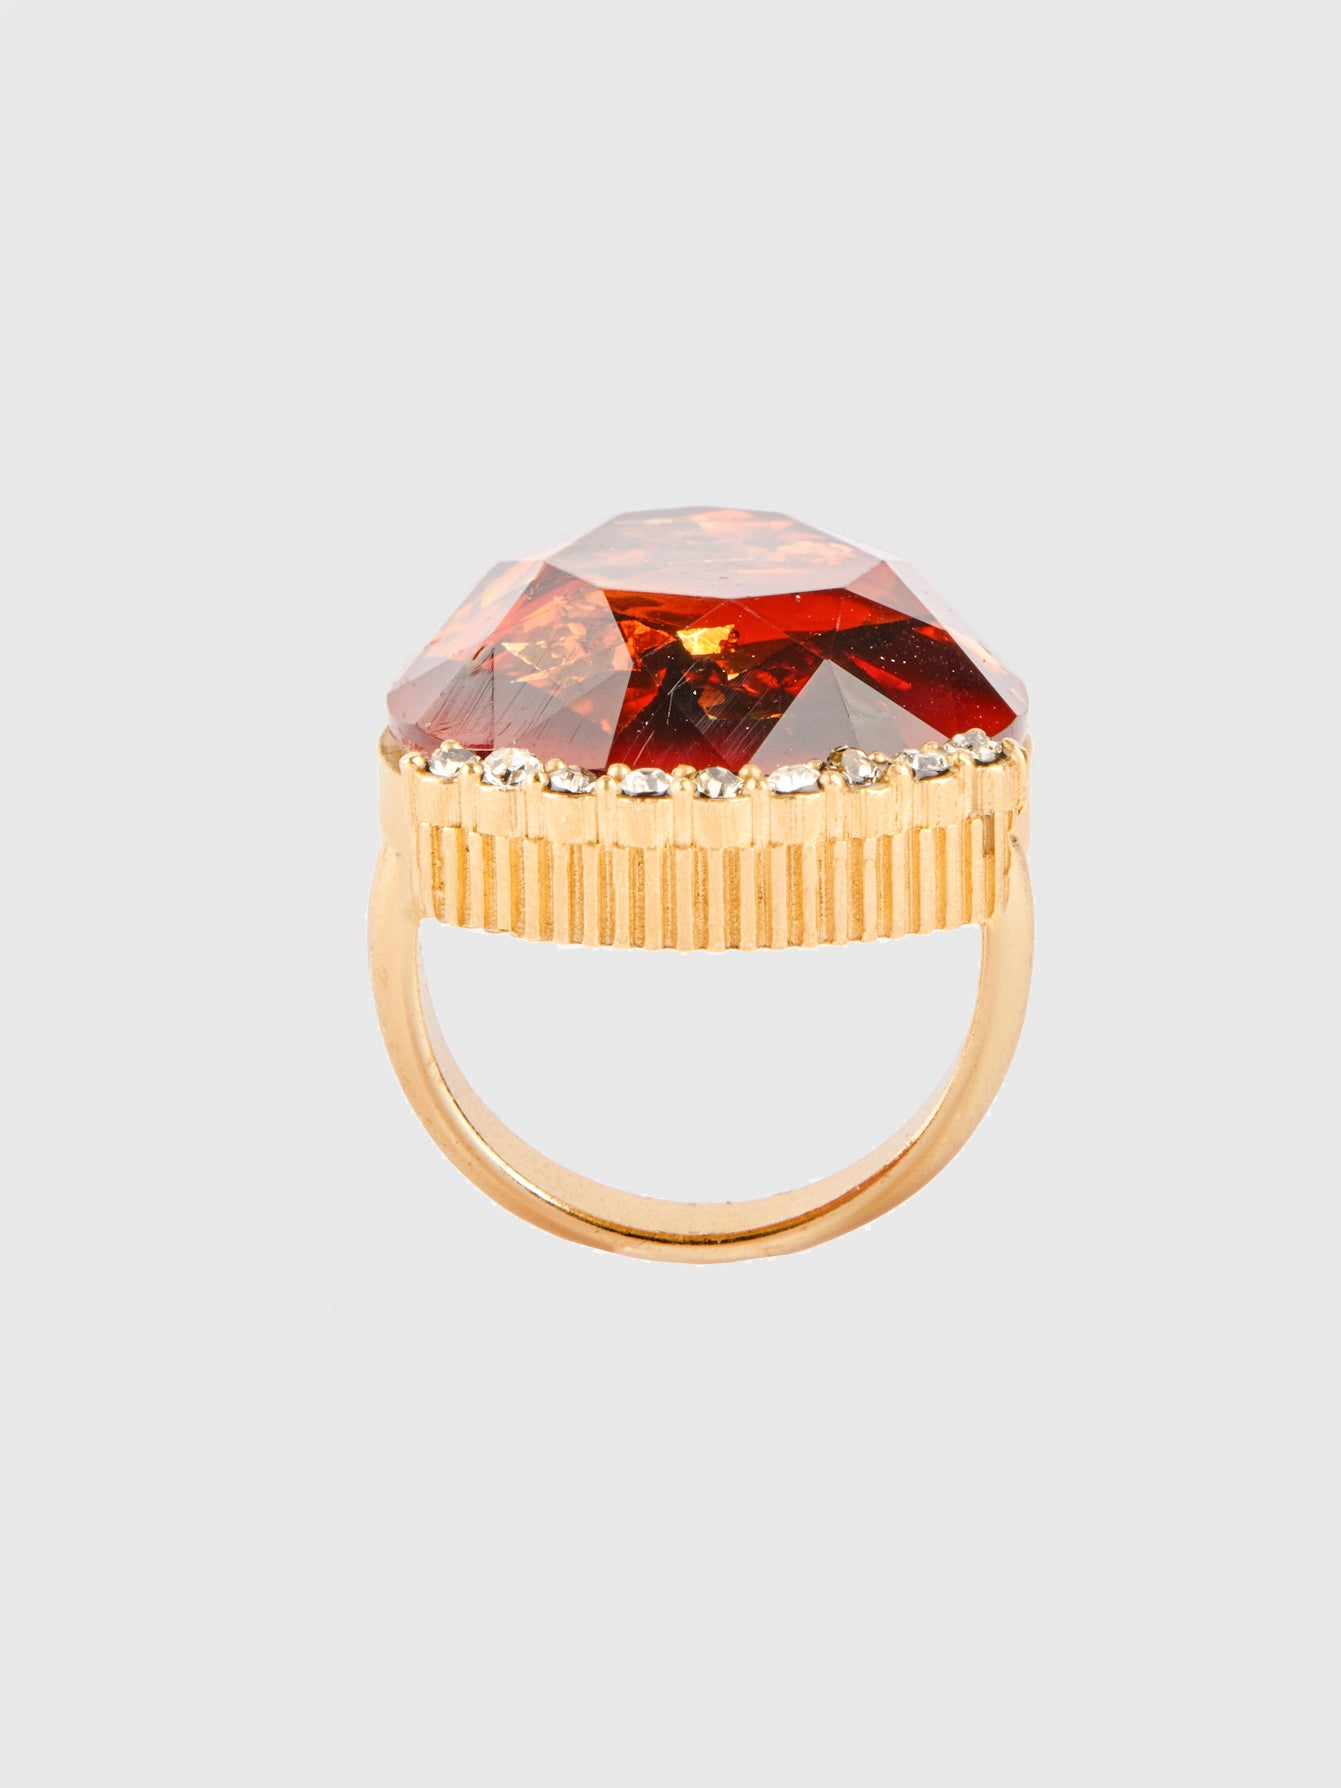 Fire Red Tear Drop Cocktail Ring